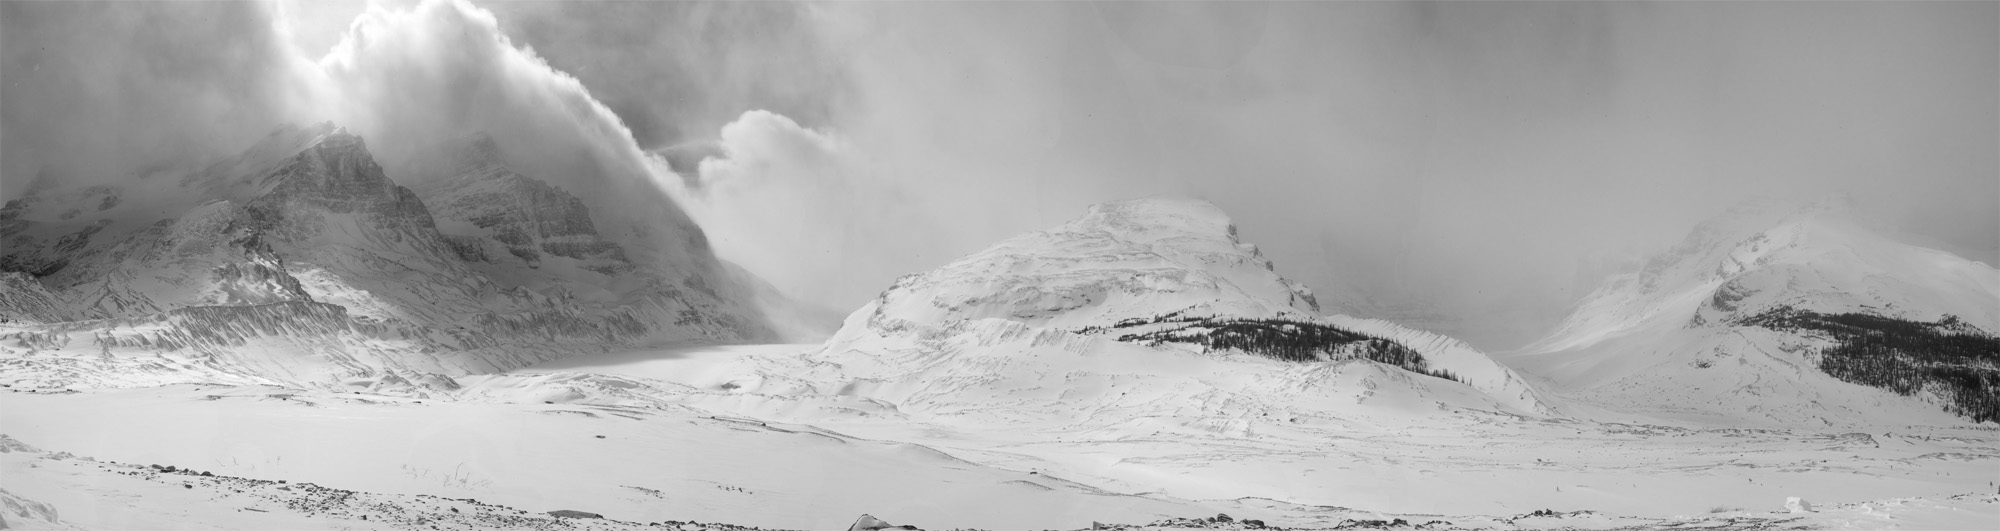 columbia_icefield_tongue_pano_crop_bw